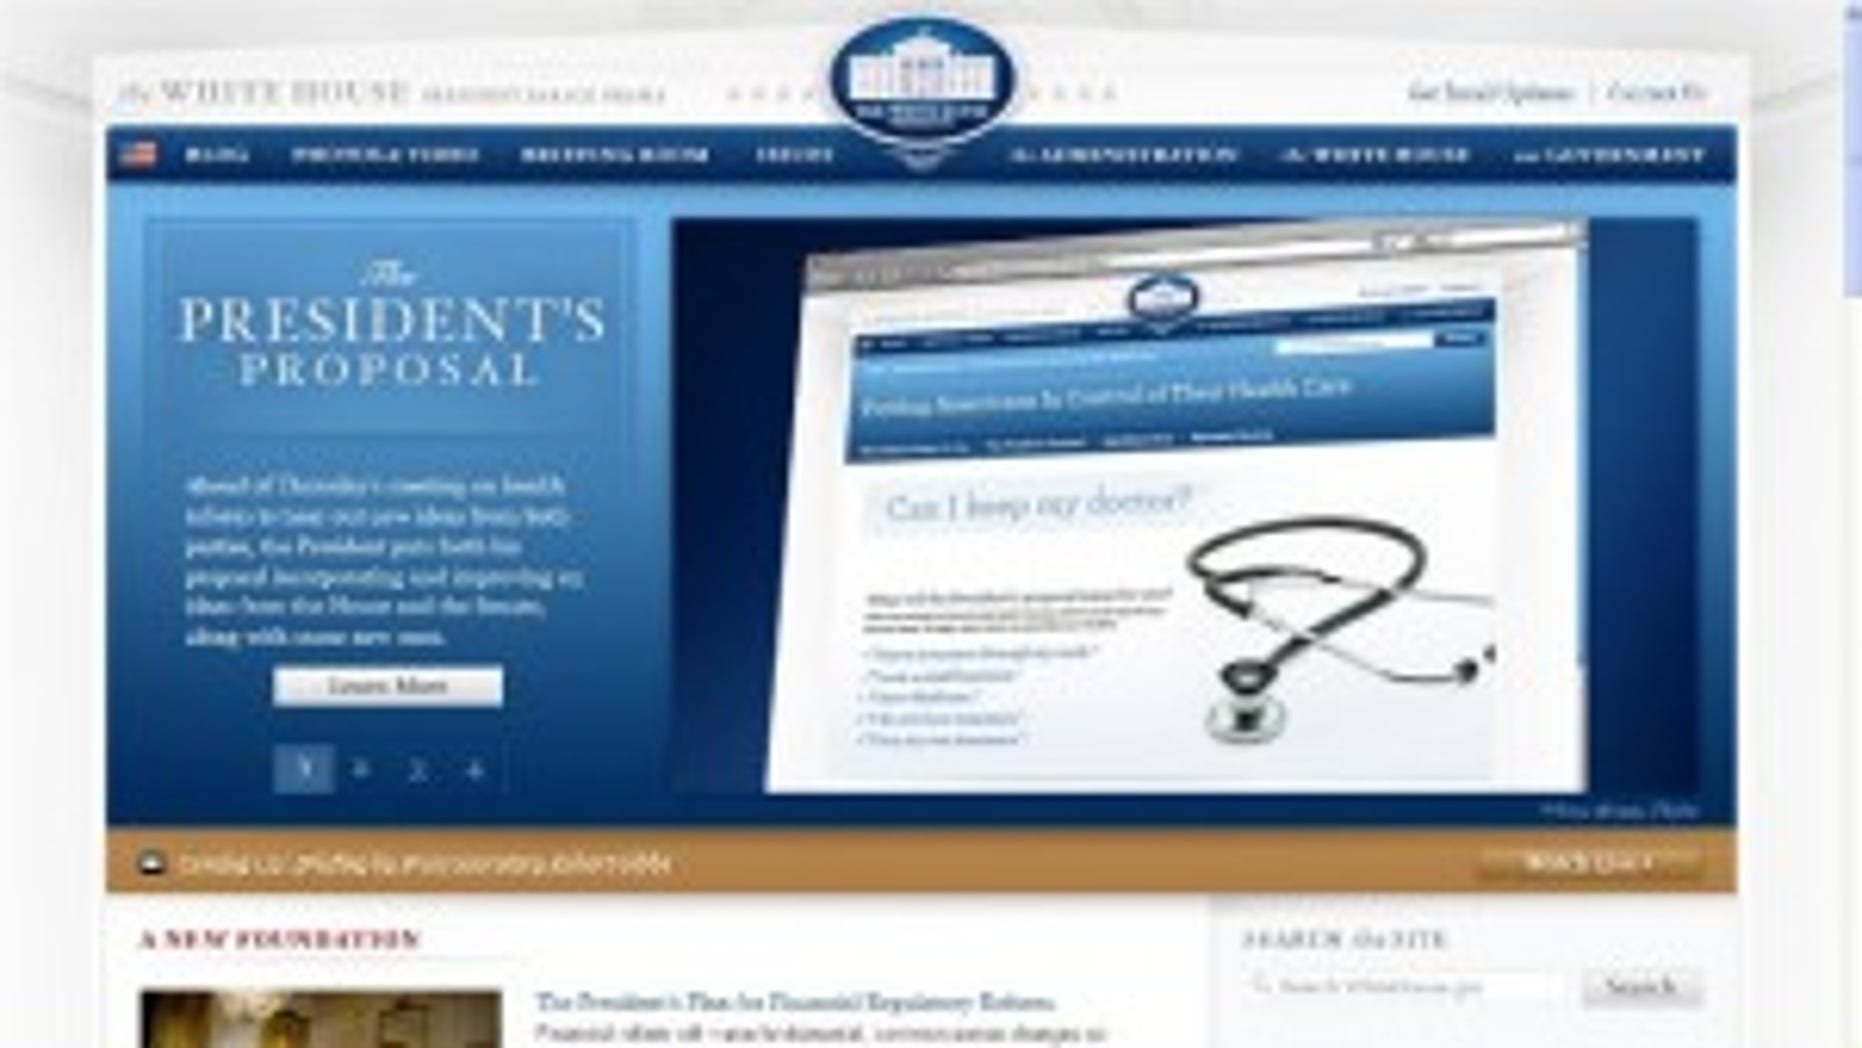 The White House website featuring President Obama's health care reform proposal/whitehouse.gov